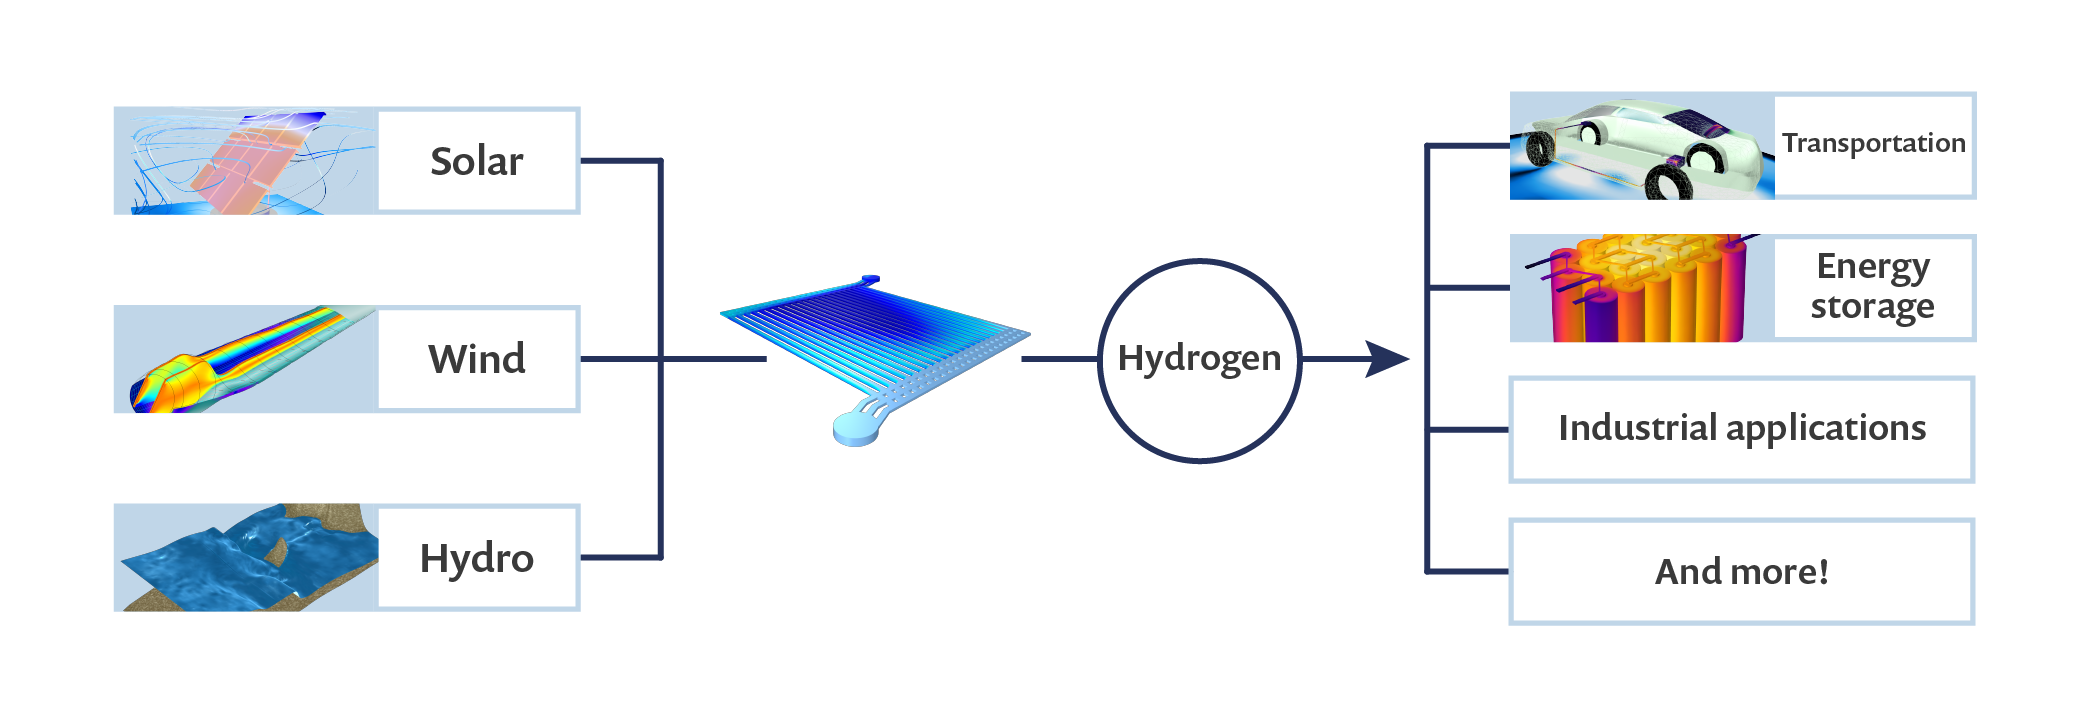 A graph showing different sectors that rely on hydrogen energy, including solar, wind, hydro, transportation, energy, industrial applications, and more.